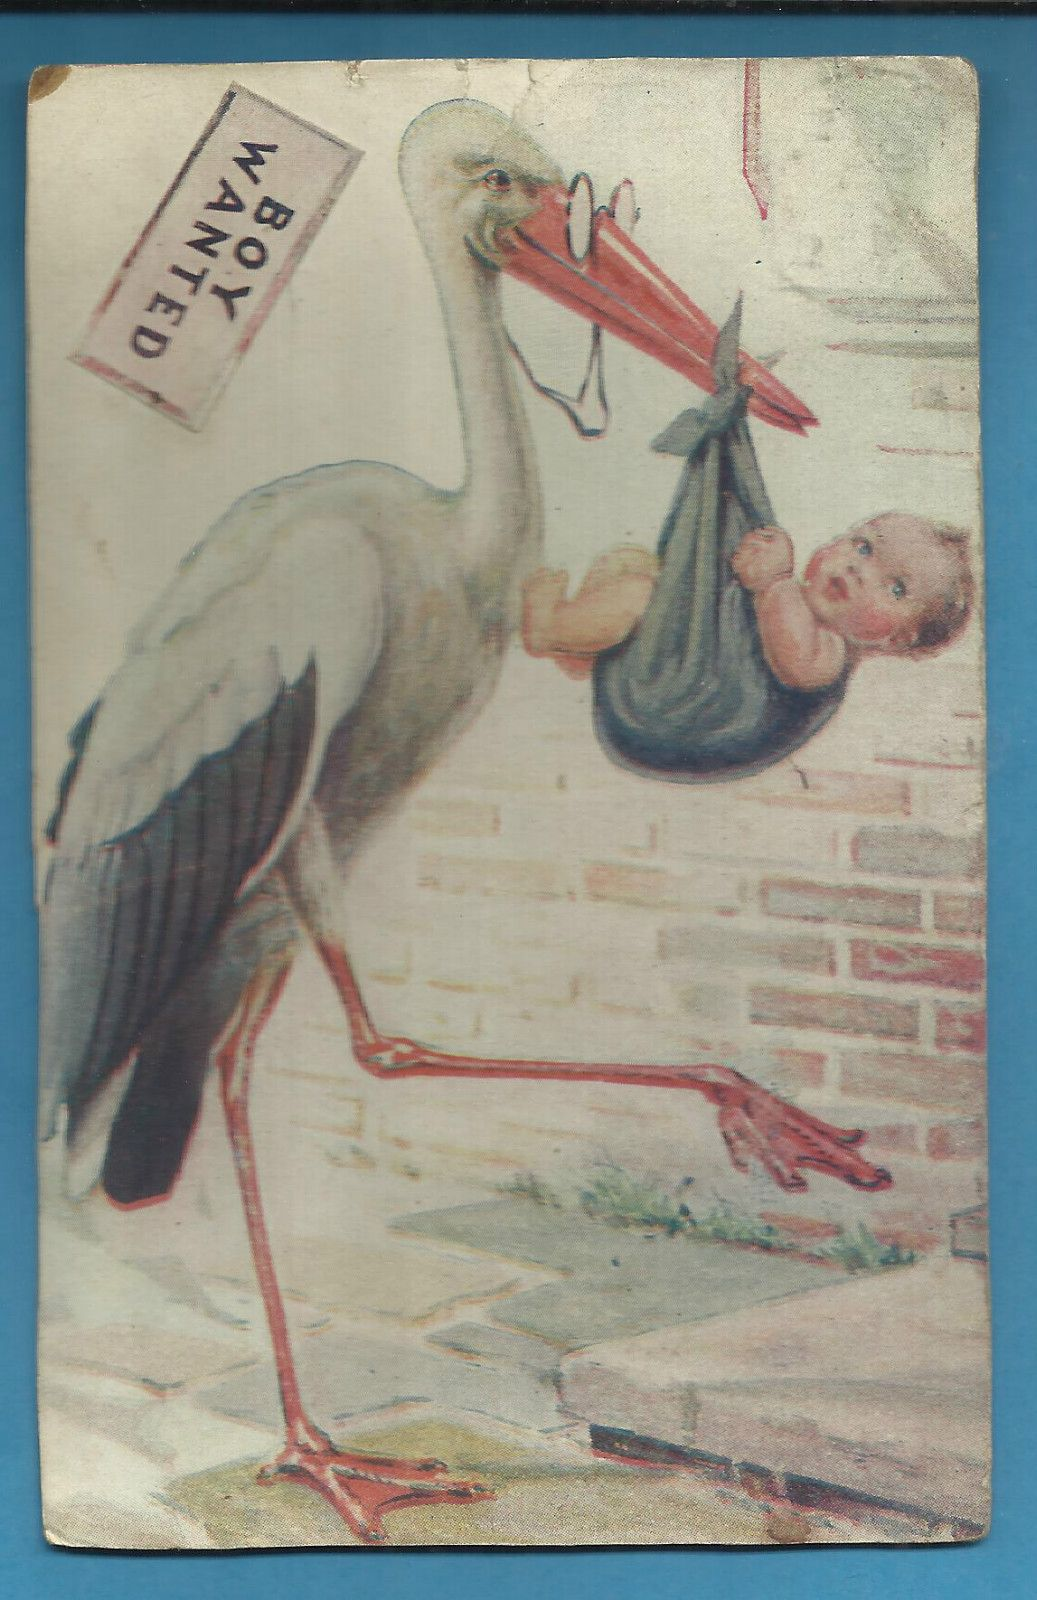 Quot Boy Wanted Quot Sign Stork With Baby Boy Old Postcard 1907